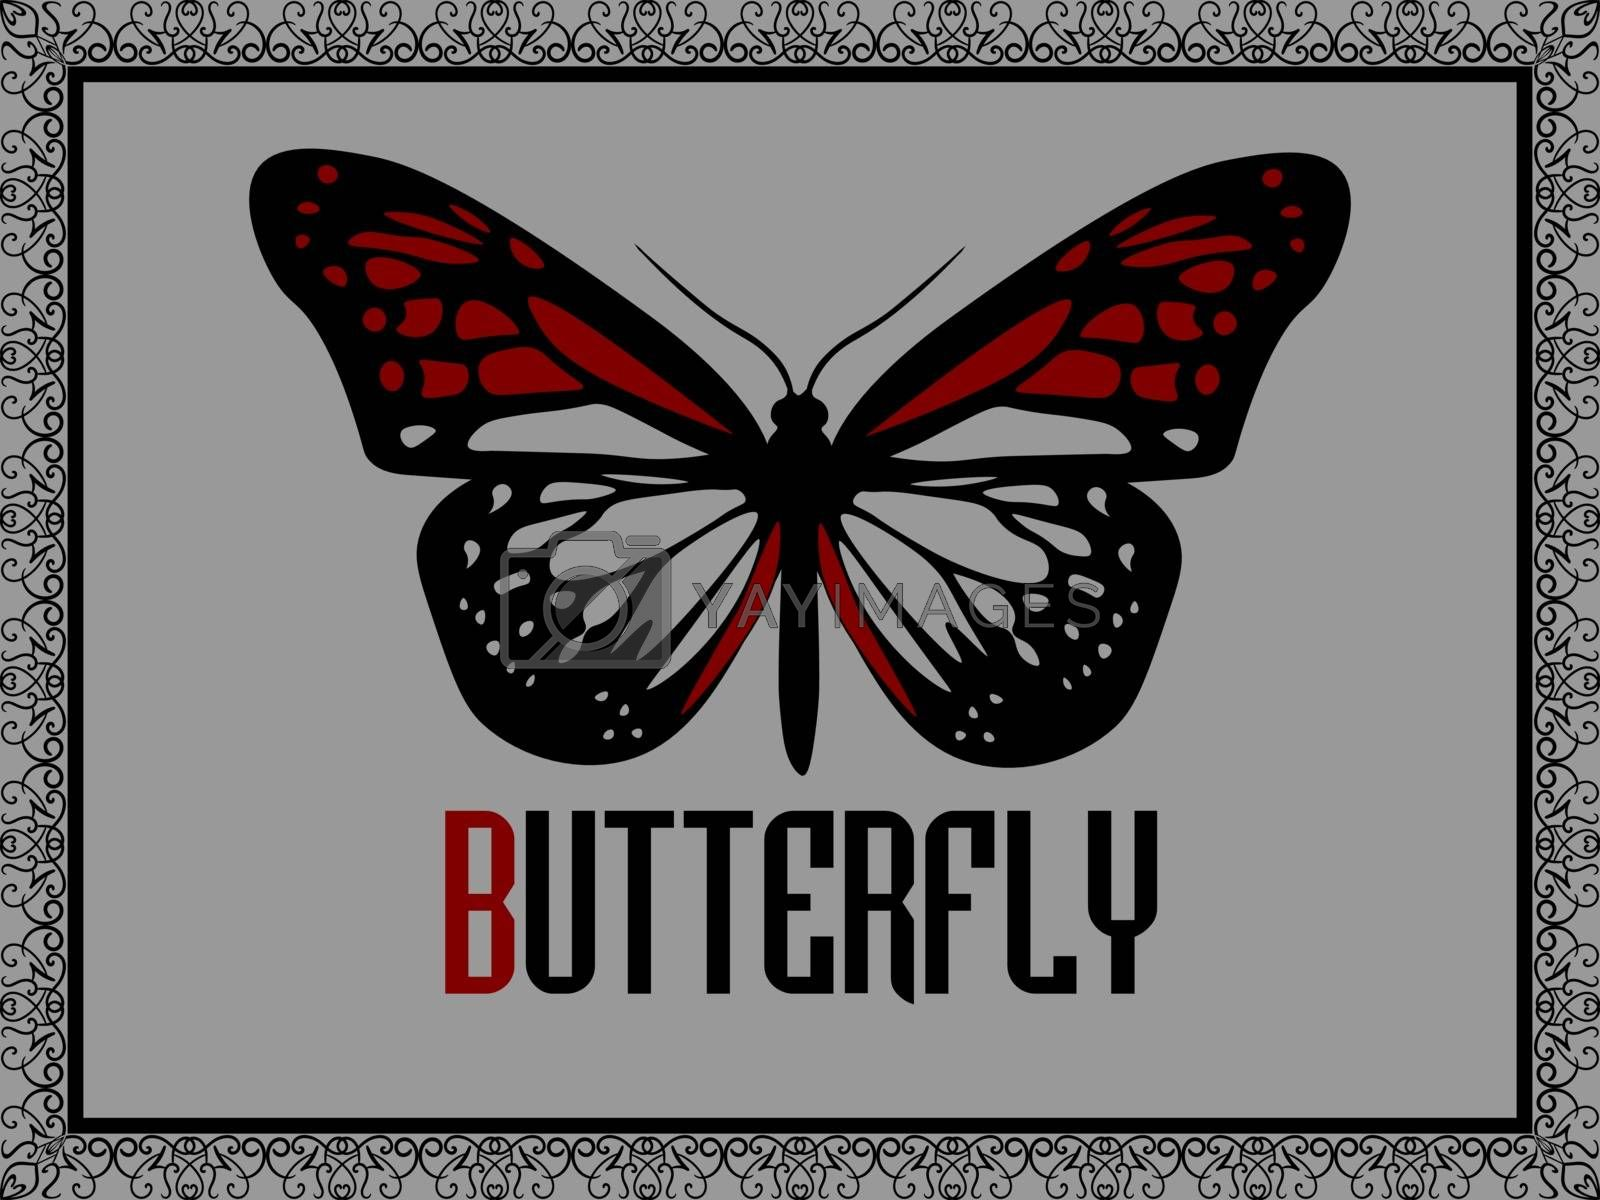 Realistic red butterfly in black elegant ornate frame on grey background